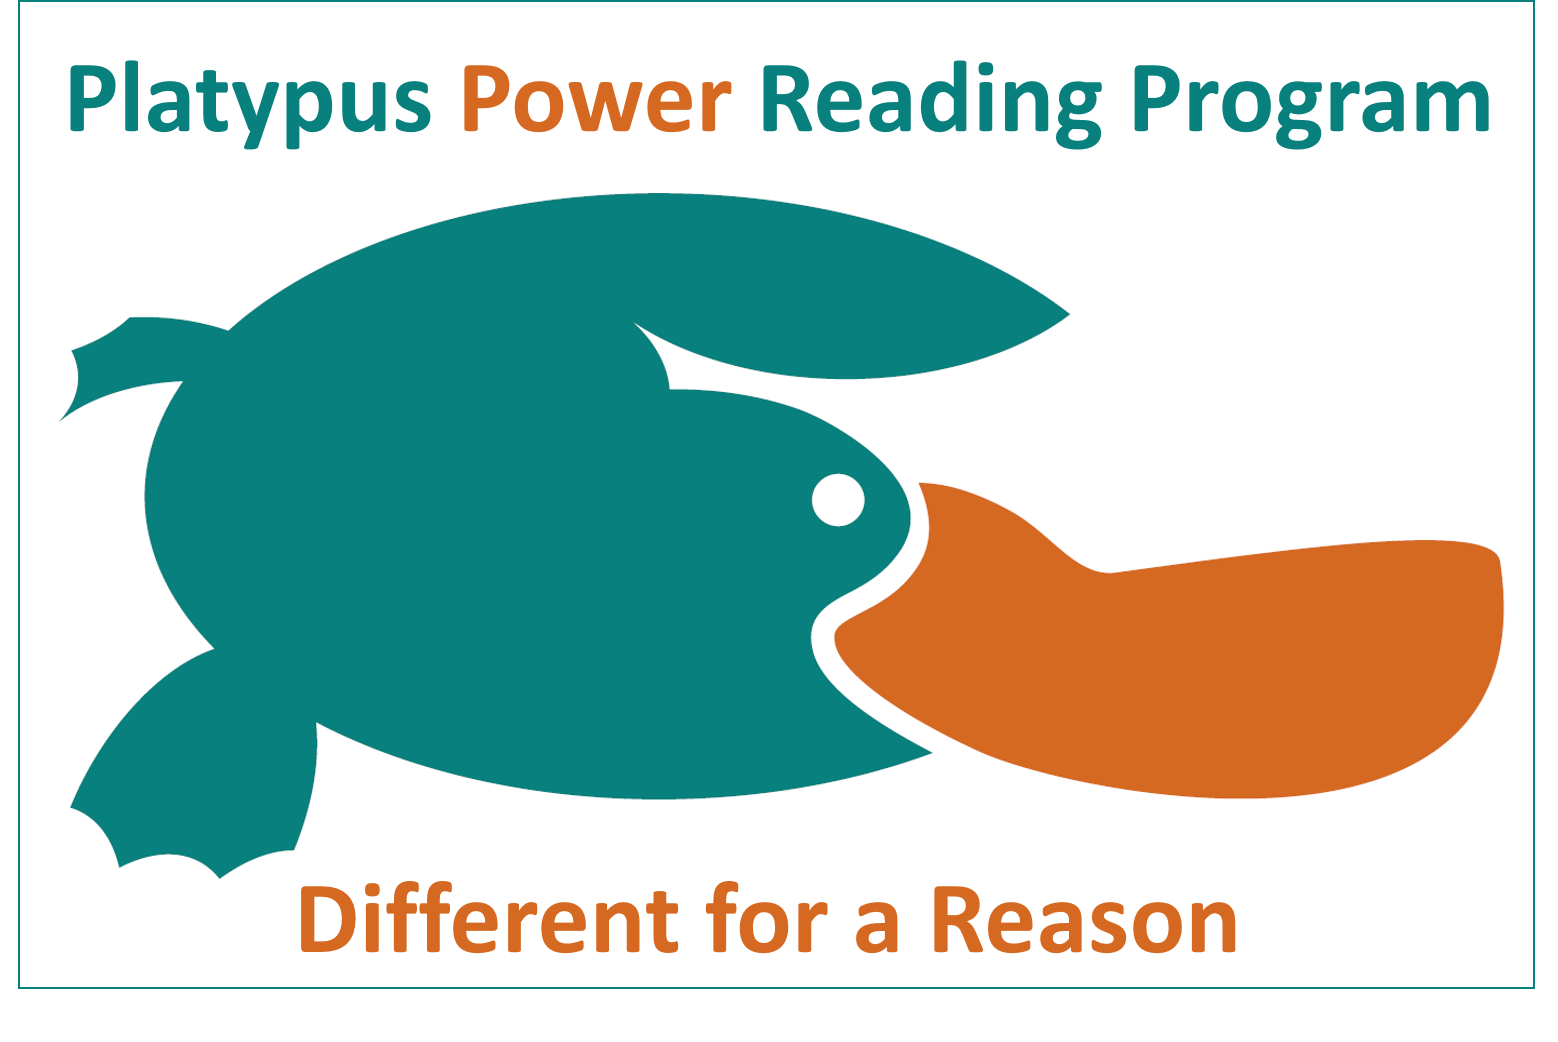 Platypus power reading program different for a reason - orange2.png